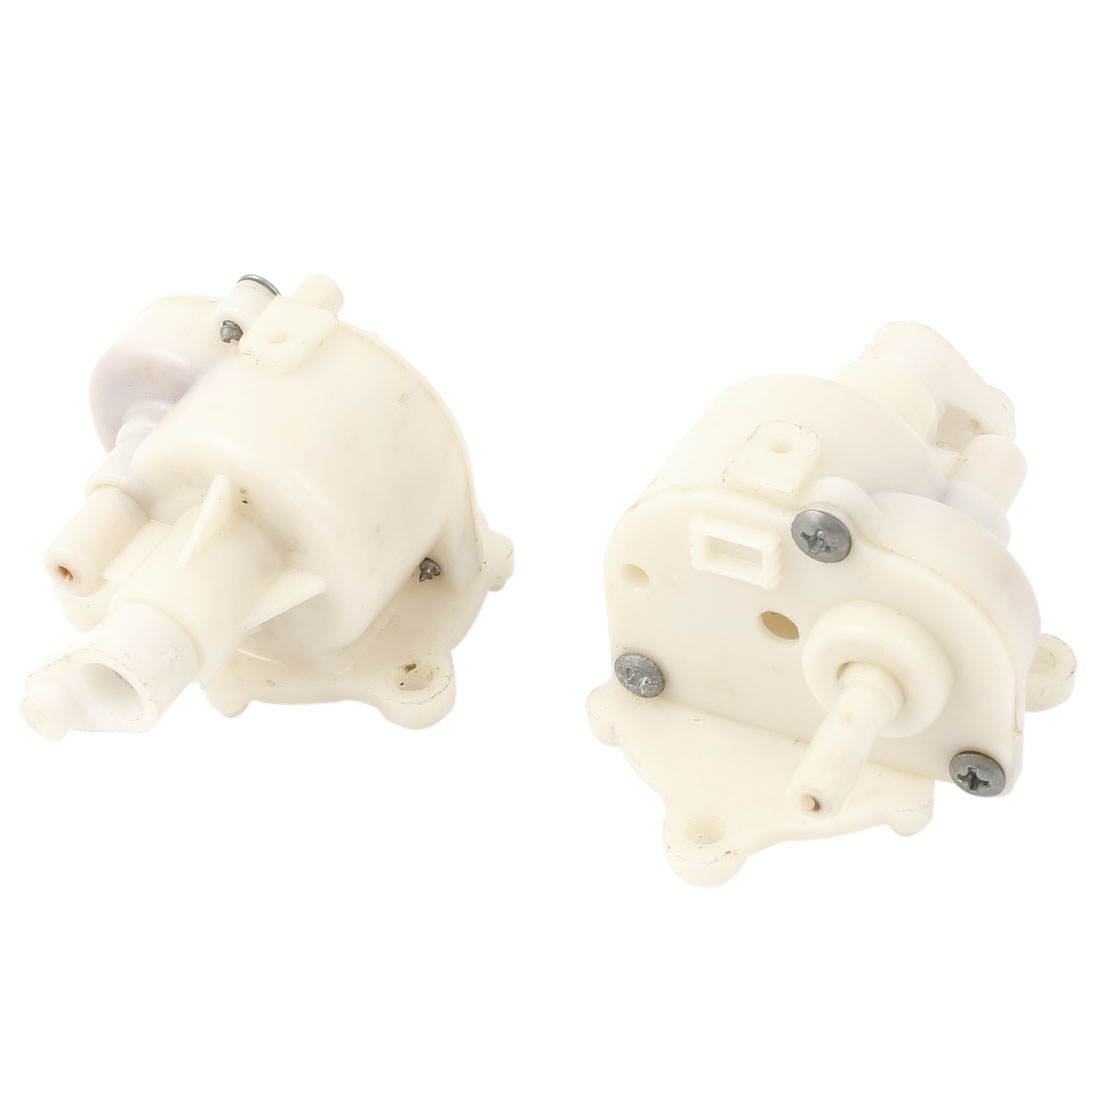 2 Pcs Off White Electric Wall Fan Repair Parts 5mm Mounted Hole Gear Box for Midea